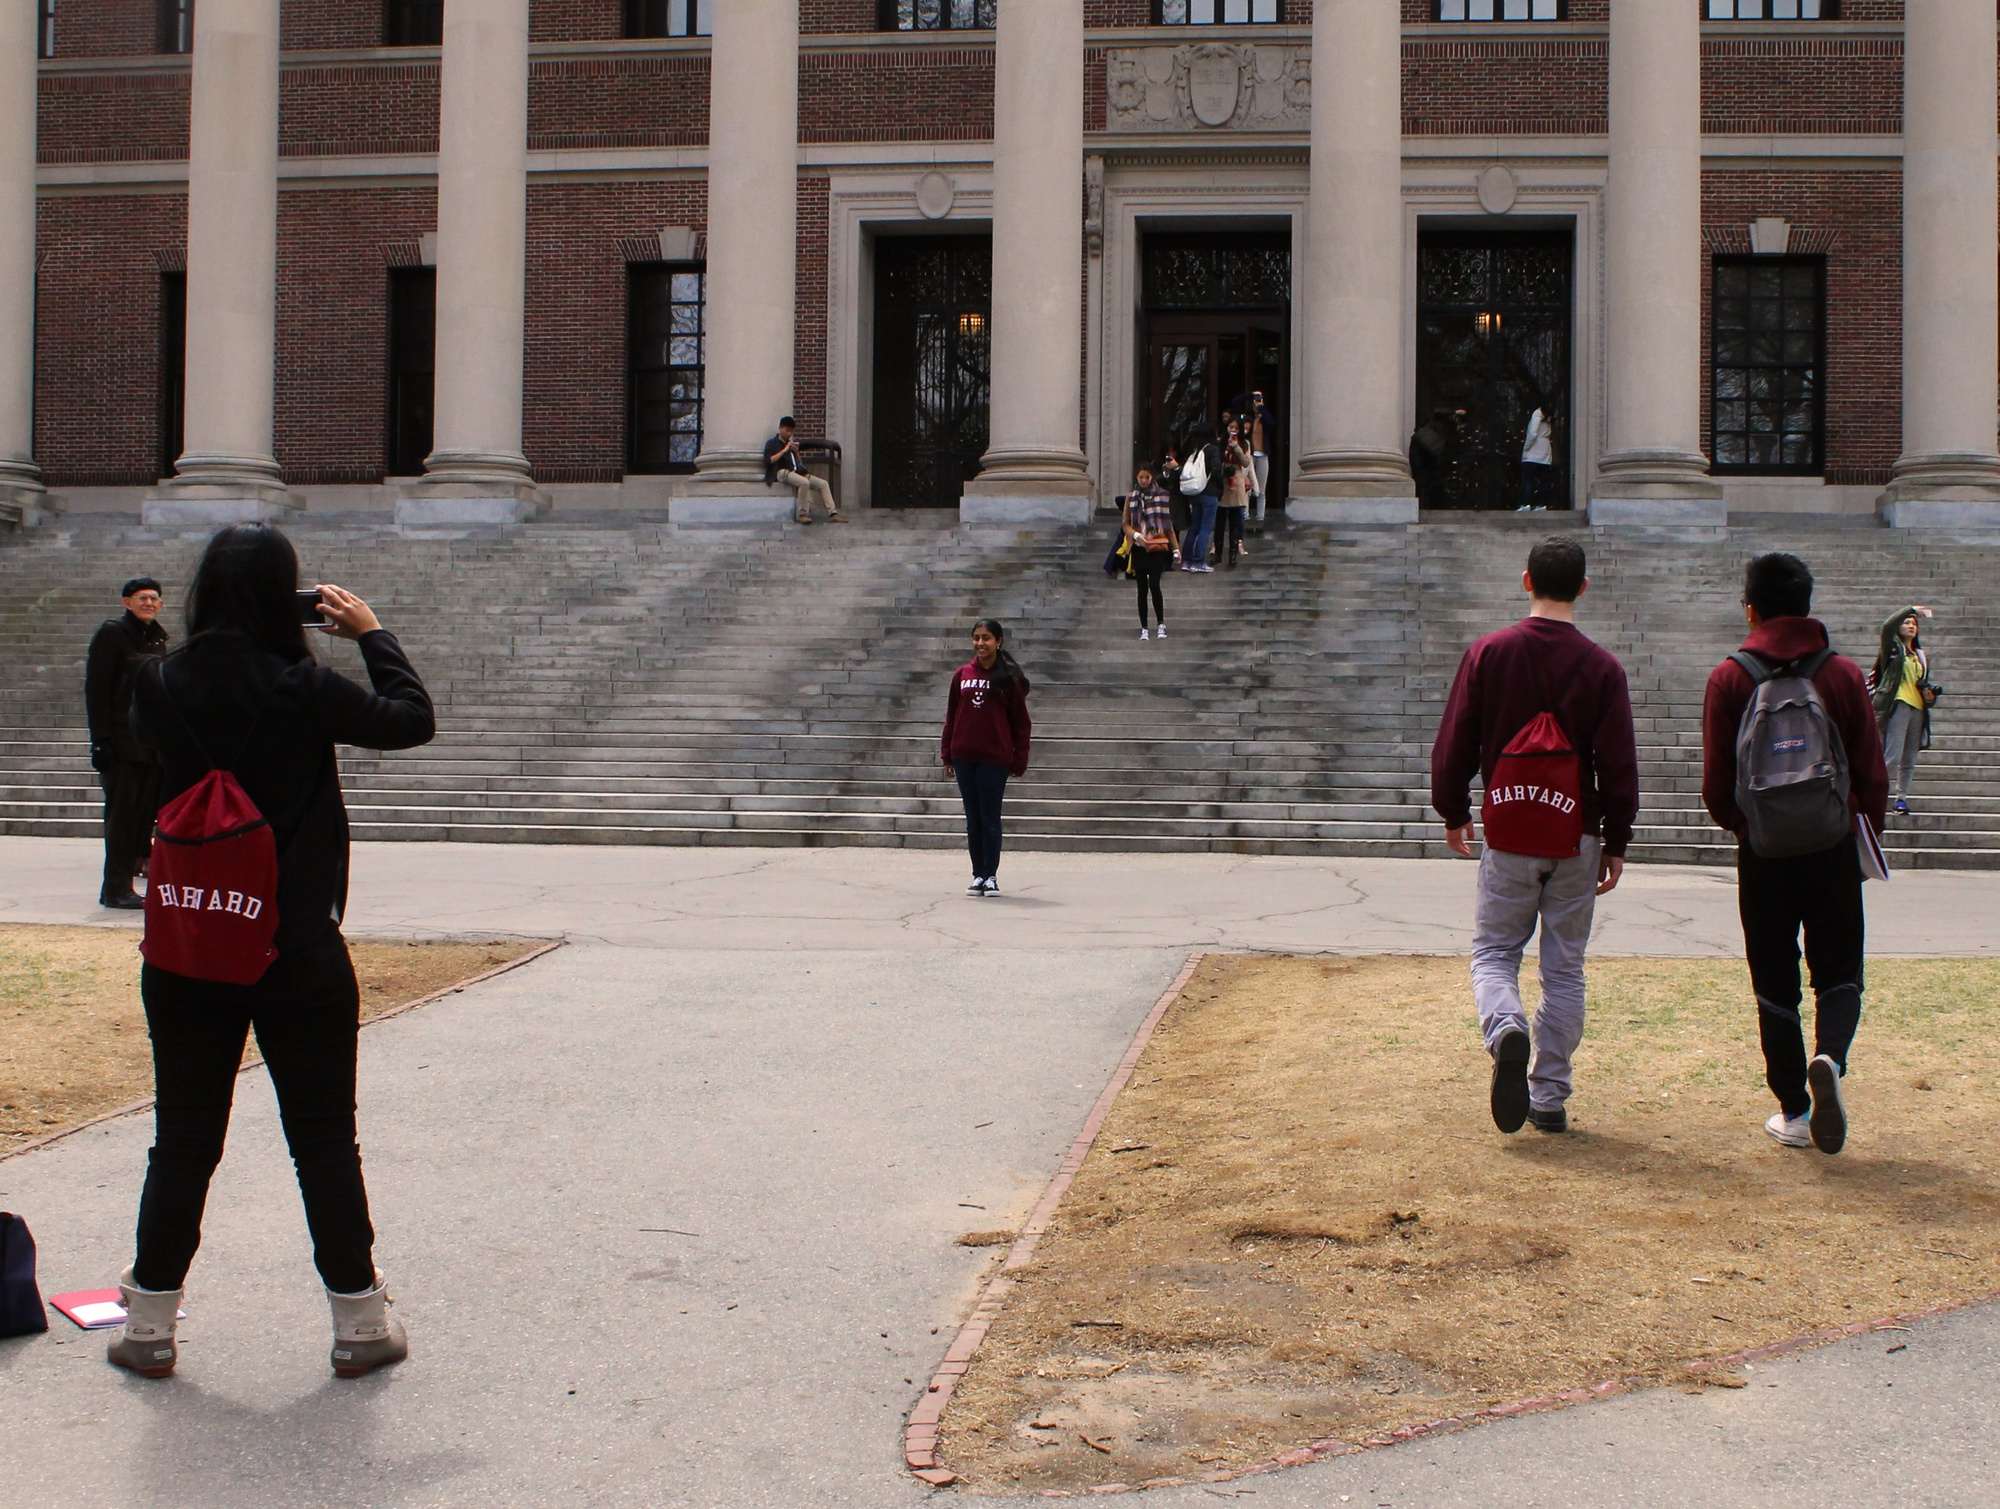 """Prefrosh Saloni Vishwakarma takes a picture of fellow prefrosh Deepika S. Kurup in front of Widener Library on Monday, the last day of Visitas. """"Visitas has been phenomenal. One of the best parts is how approachable everyone is,"""" said Kurup."""